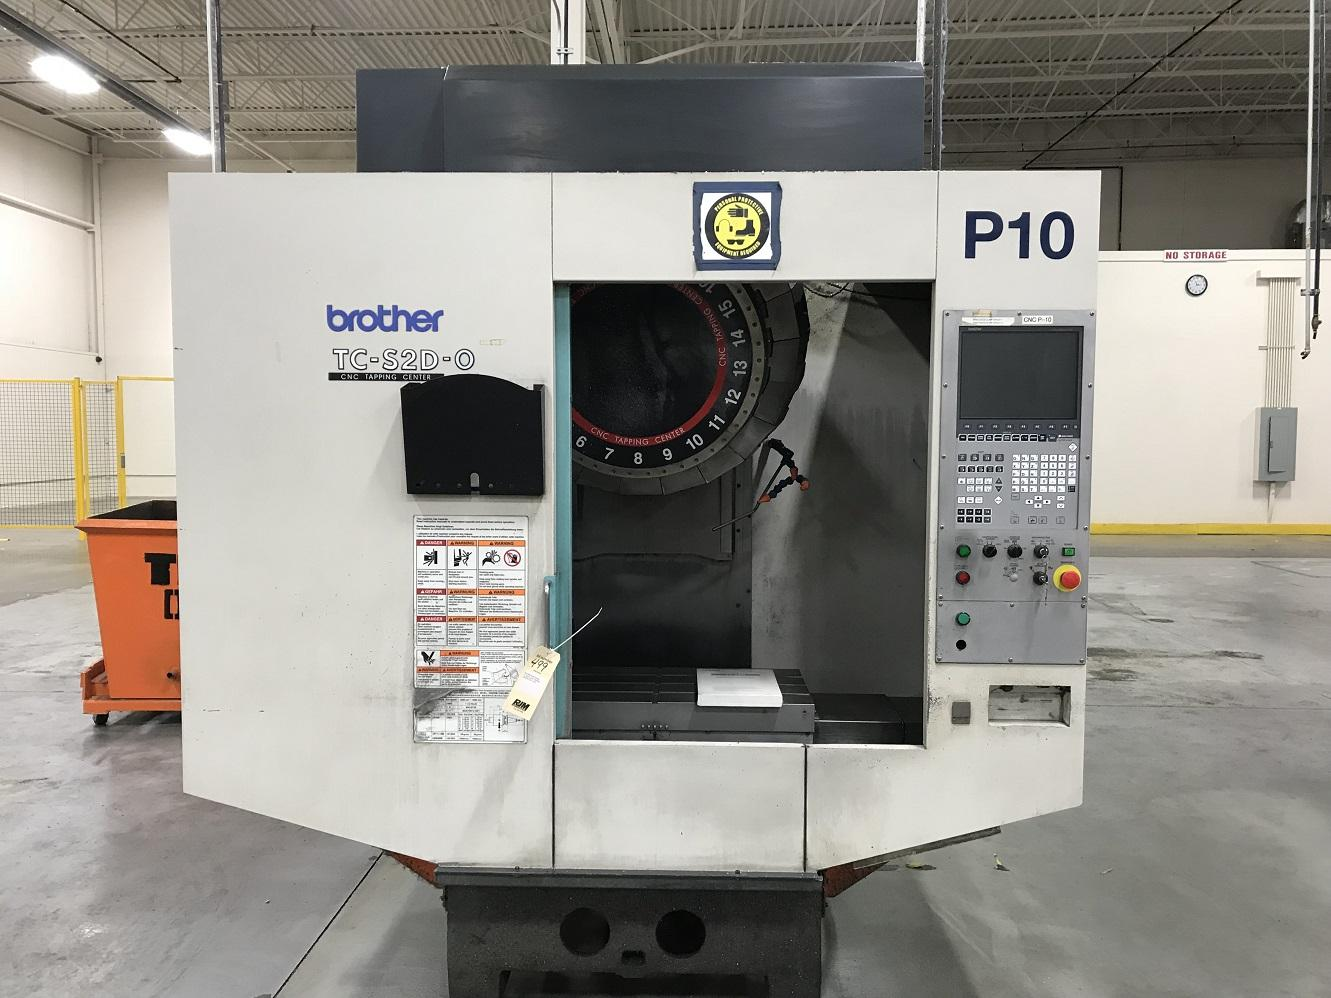 BROTHER TC S2D-O CNC DRILL AND TAPPING CENTER WITH ROTARY TABLE